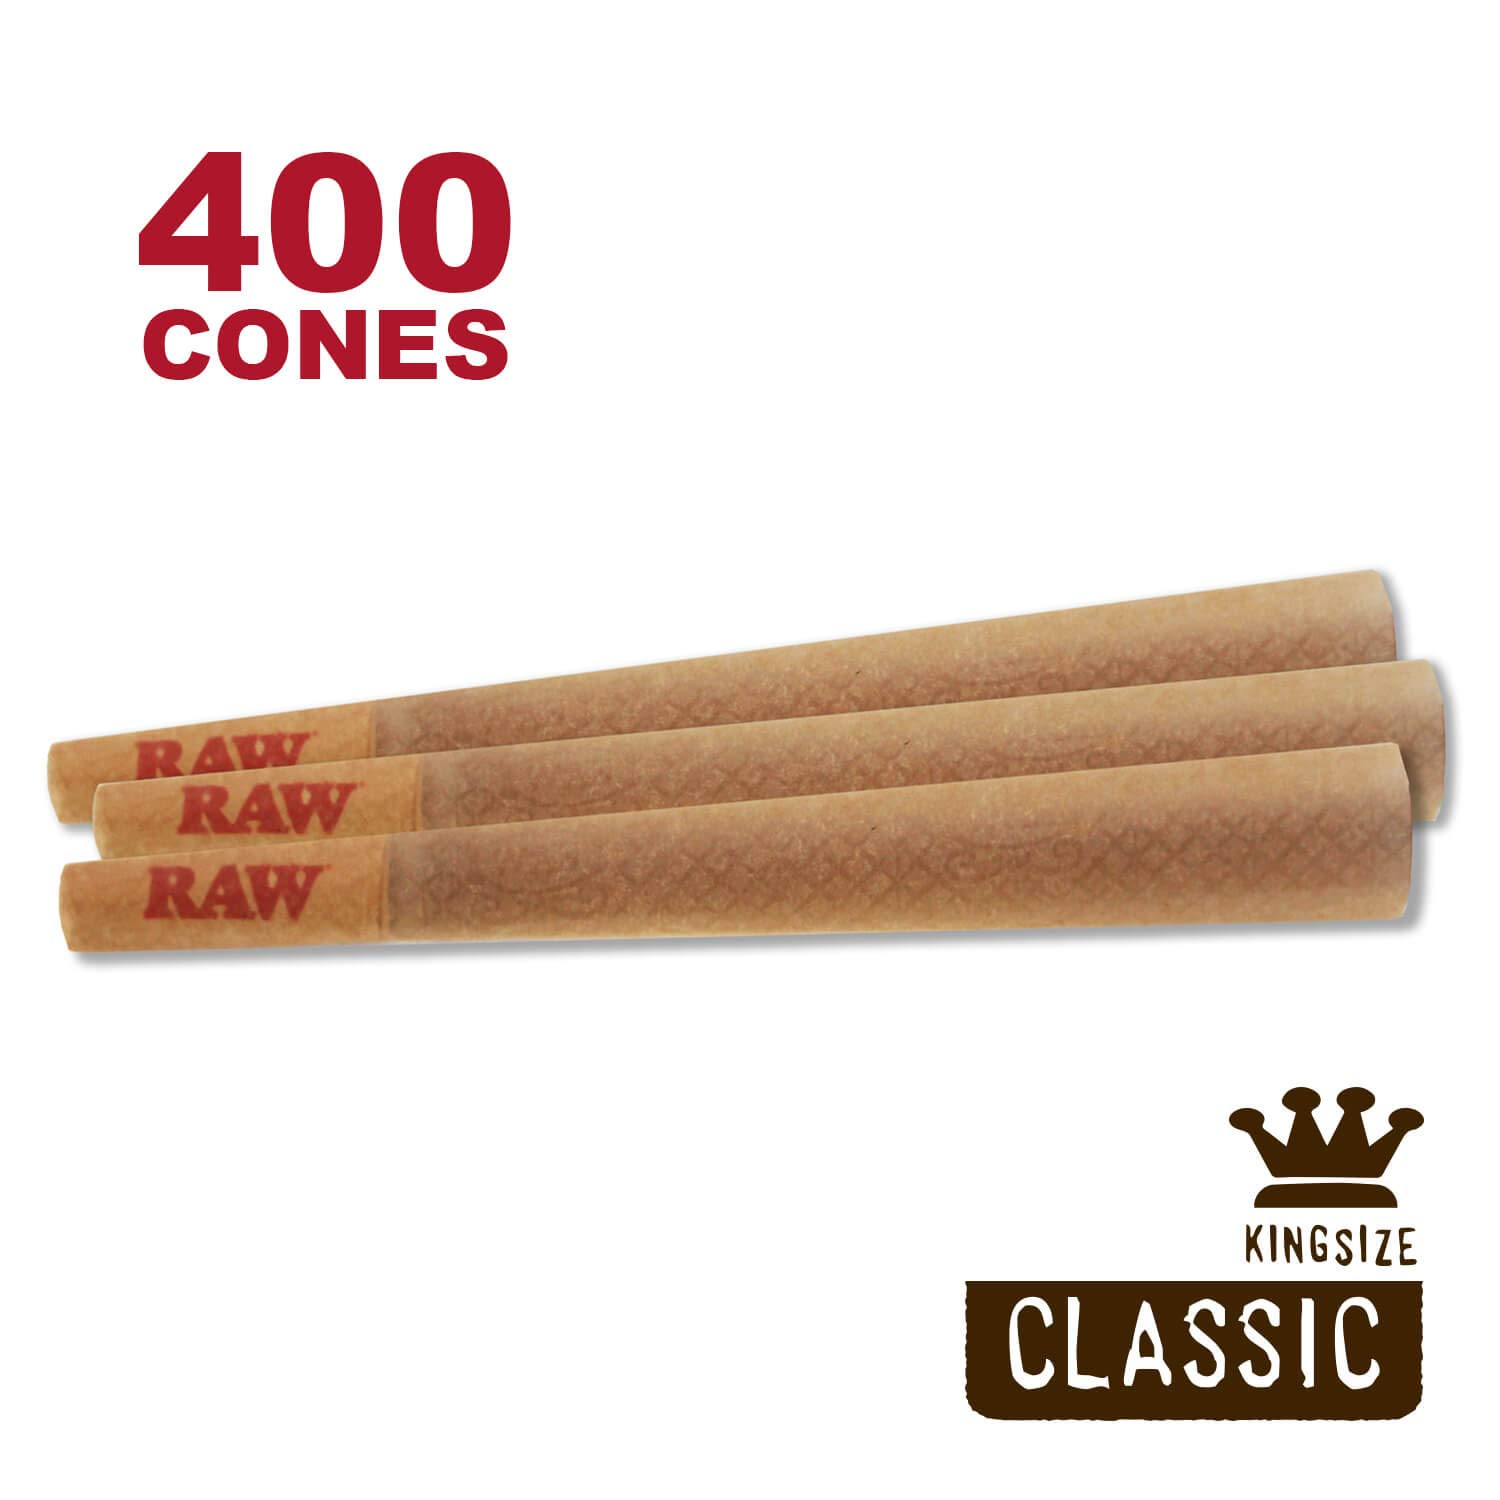 RAW 400 Classic King Size Cones - W Gallery Scoop Sticker - Discreet Box - Pure Hemp 109mm Pre Rolled Cones - 26mm Filter Tips - Natural Brown Unbleached Unrefined Rolling Papers - Bulk Pack Bundle